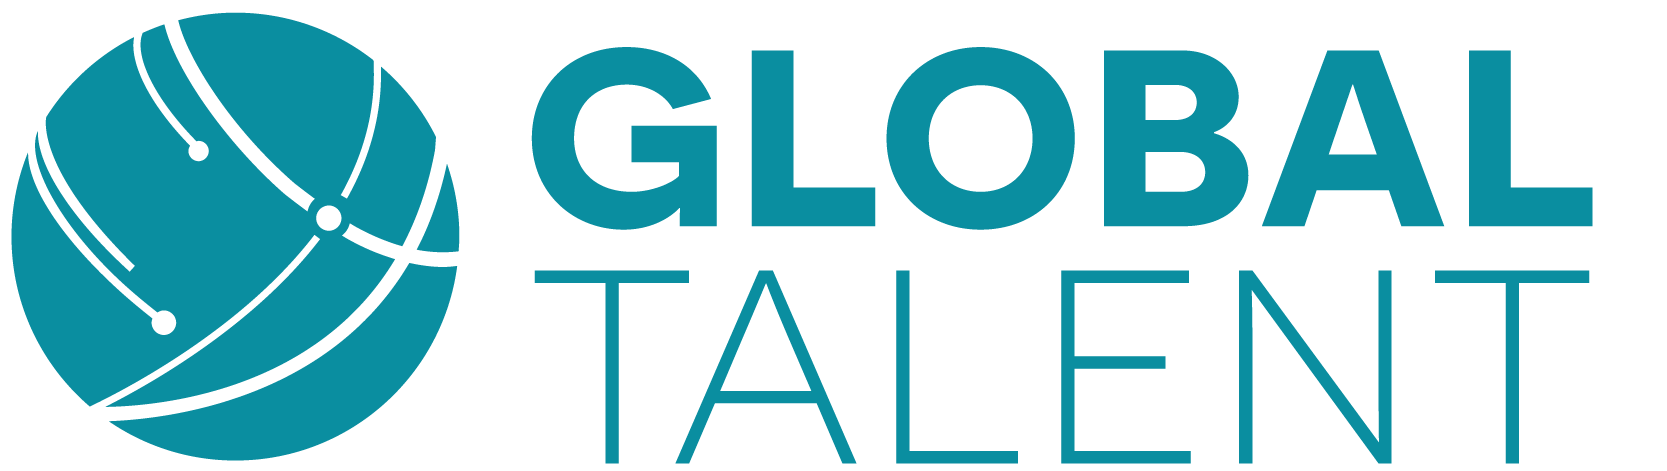 Global Talent logo-03